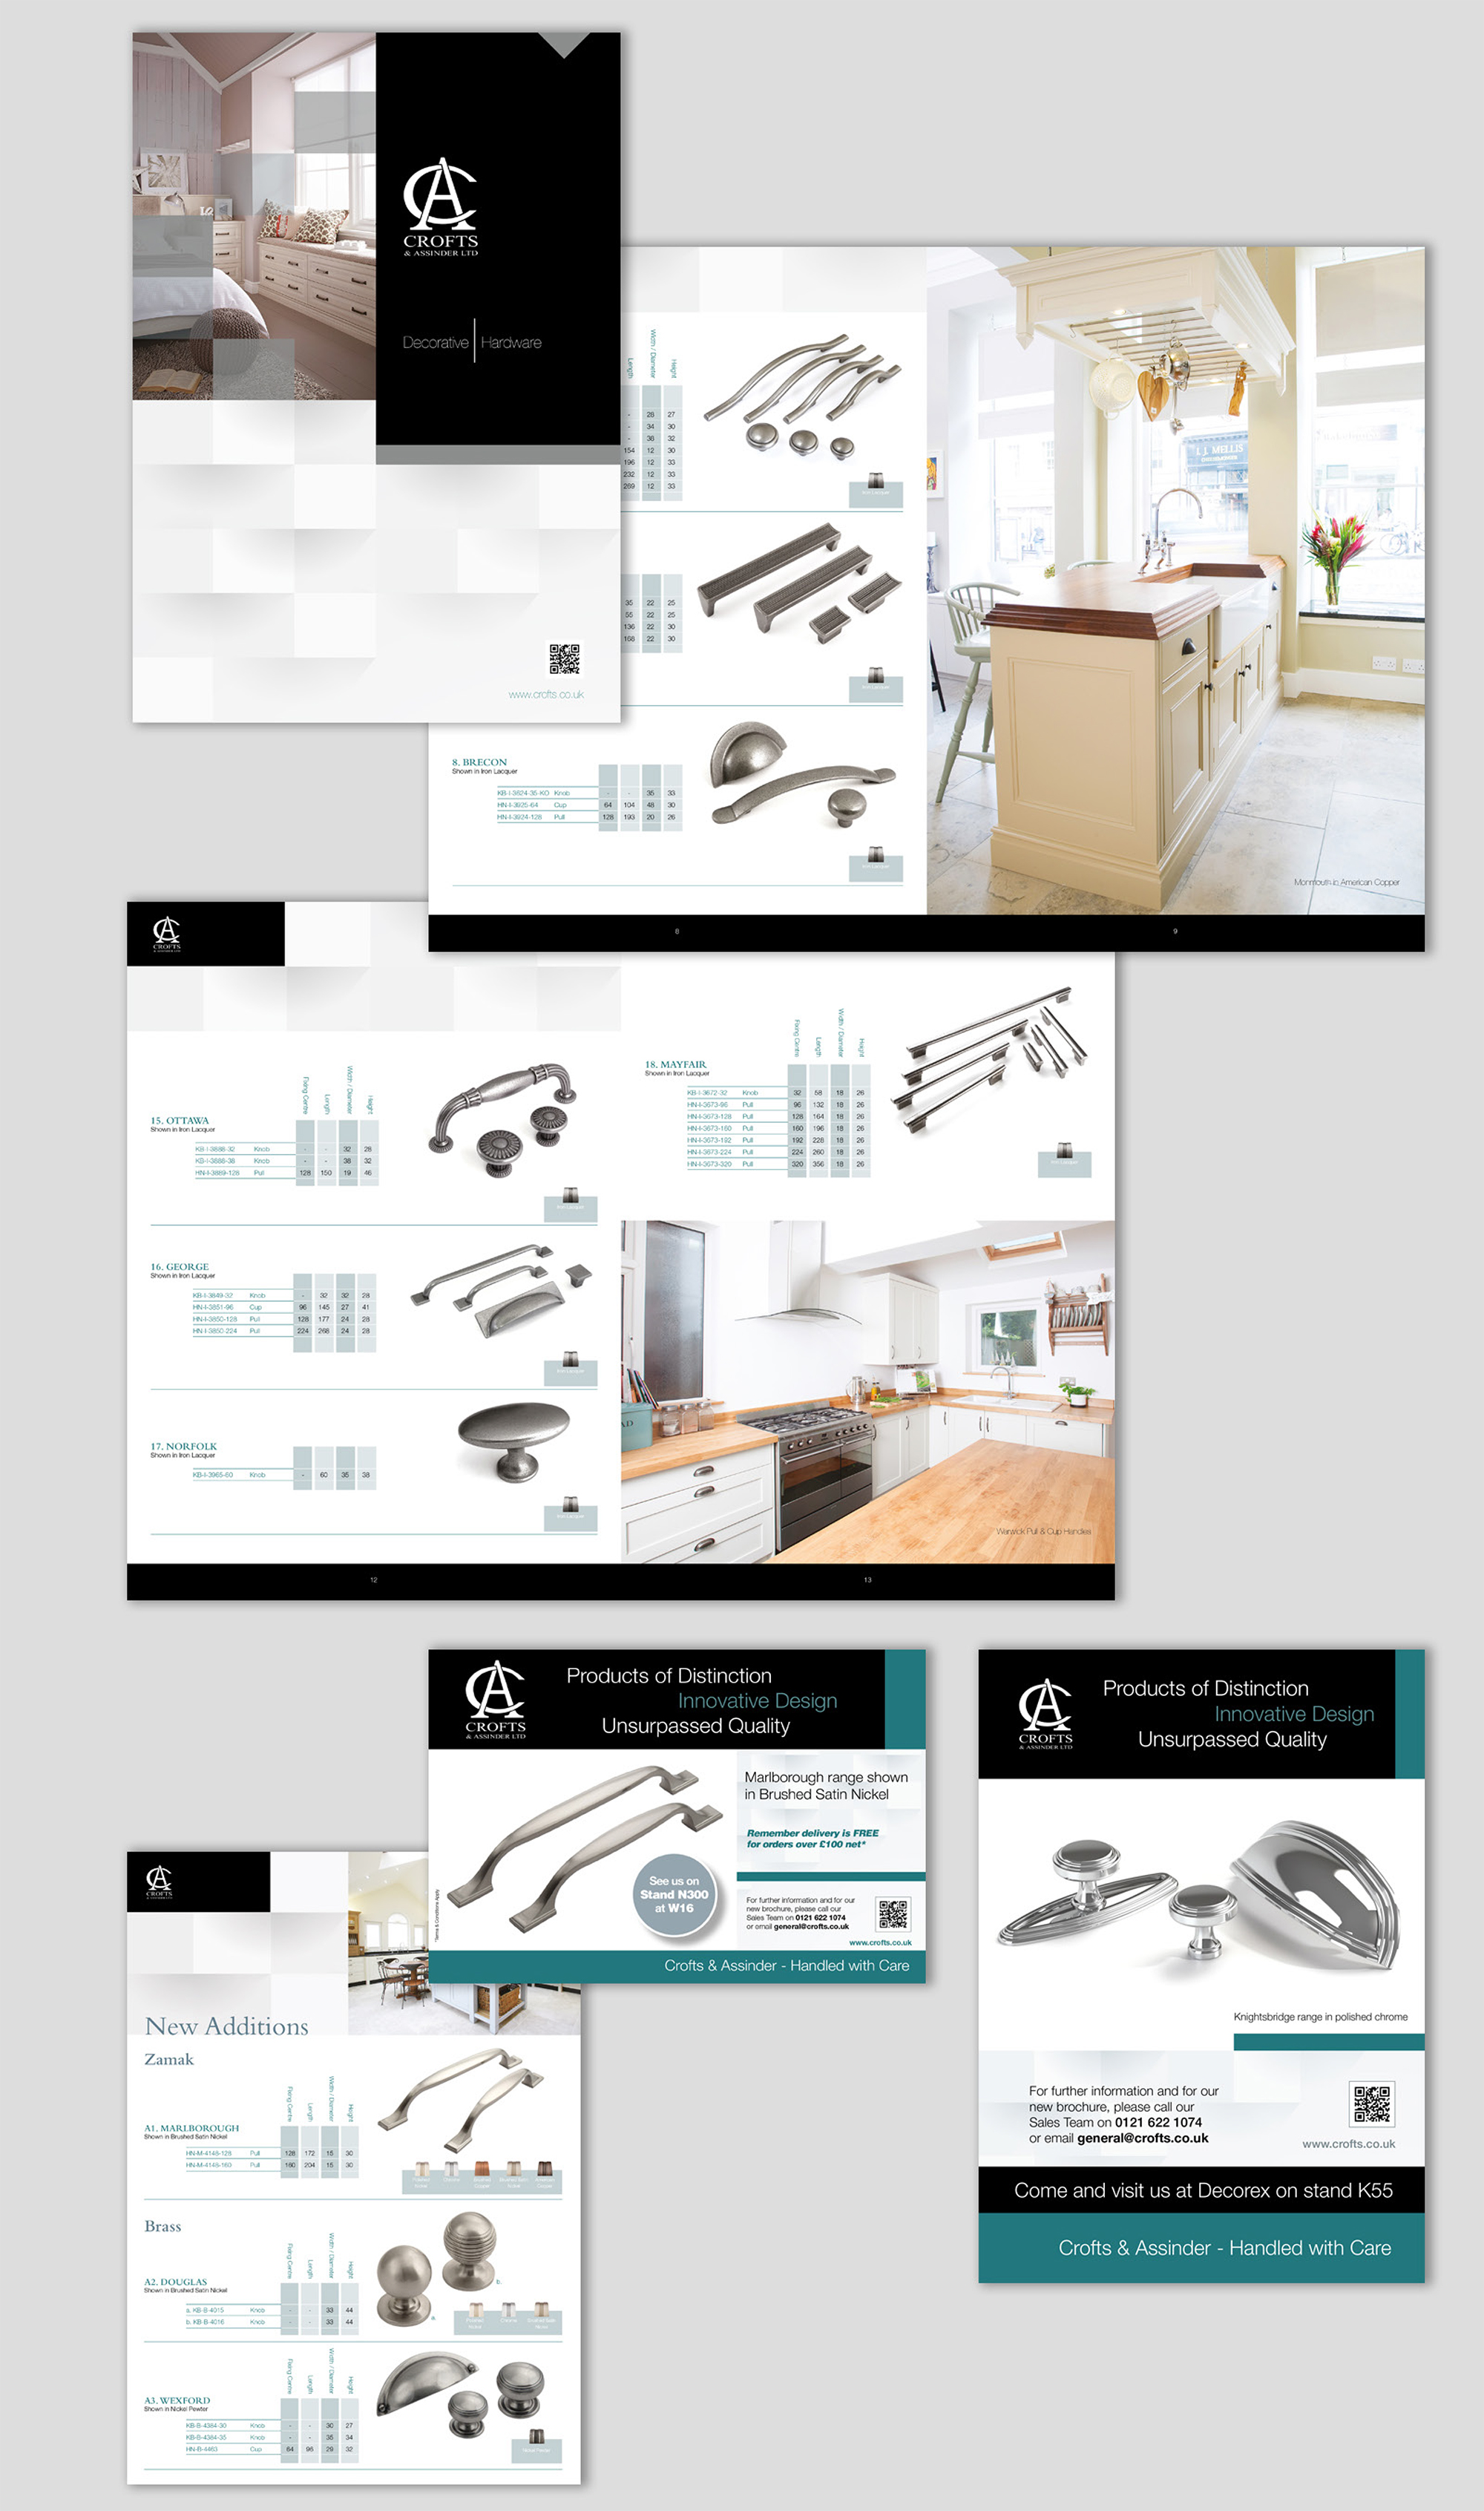 Crofts and Assinder Branding